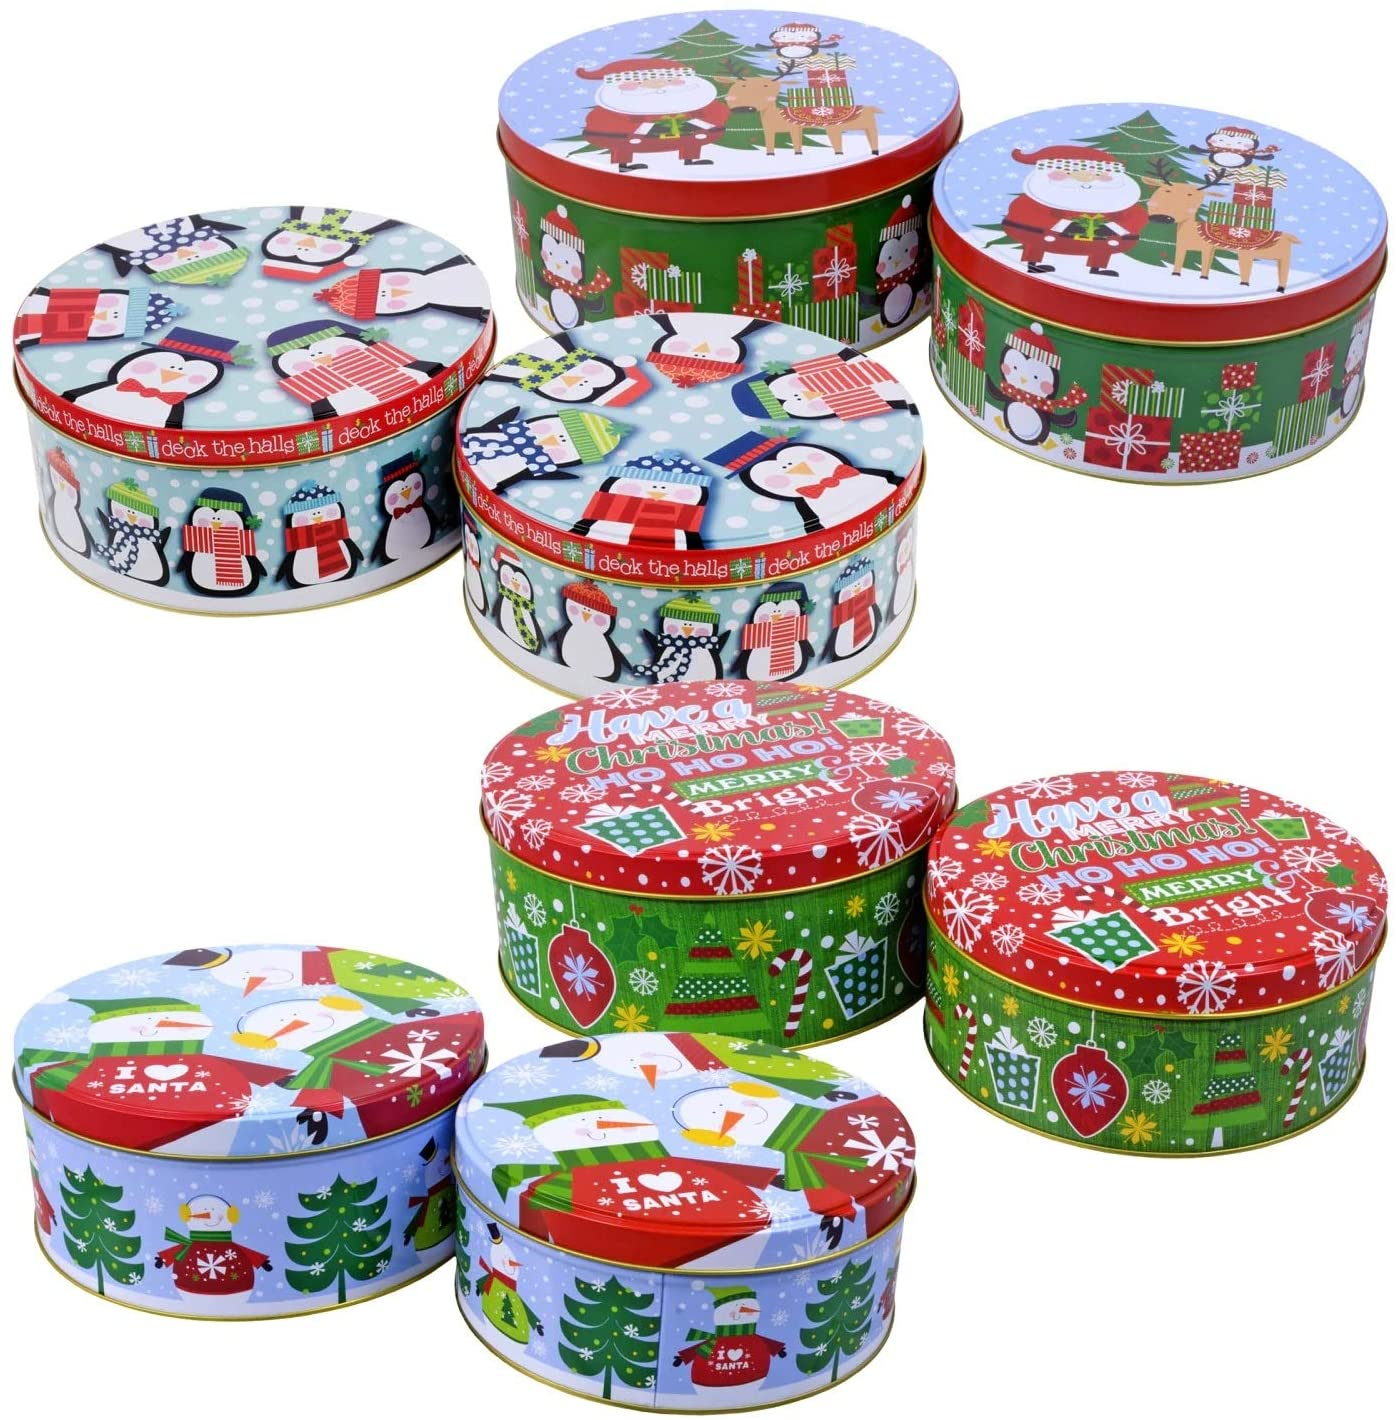 Round Nesting Tins With Holiday Print Designs Bundle of 2 Round Metal Tins with Lids for Cookies, Candy, Food Presents - 1- 6 and 3/4 Inches and 1- 6 inches Diameter